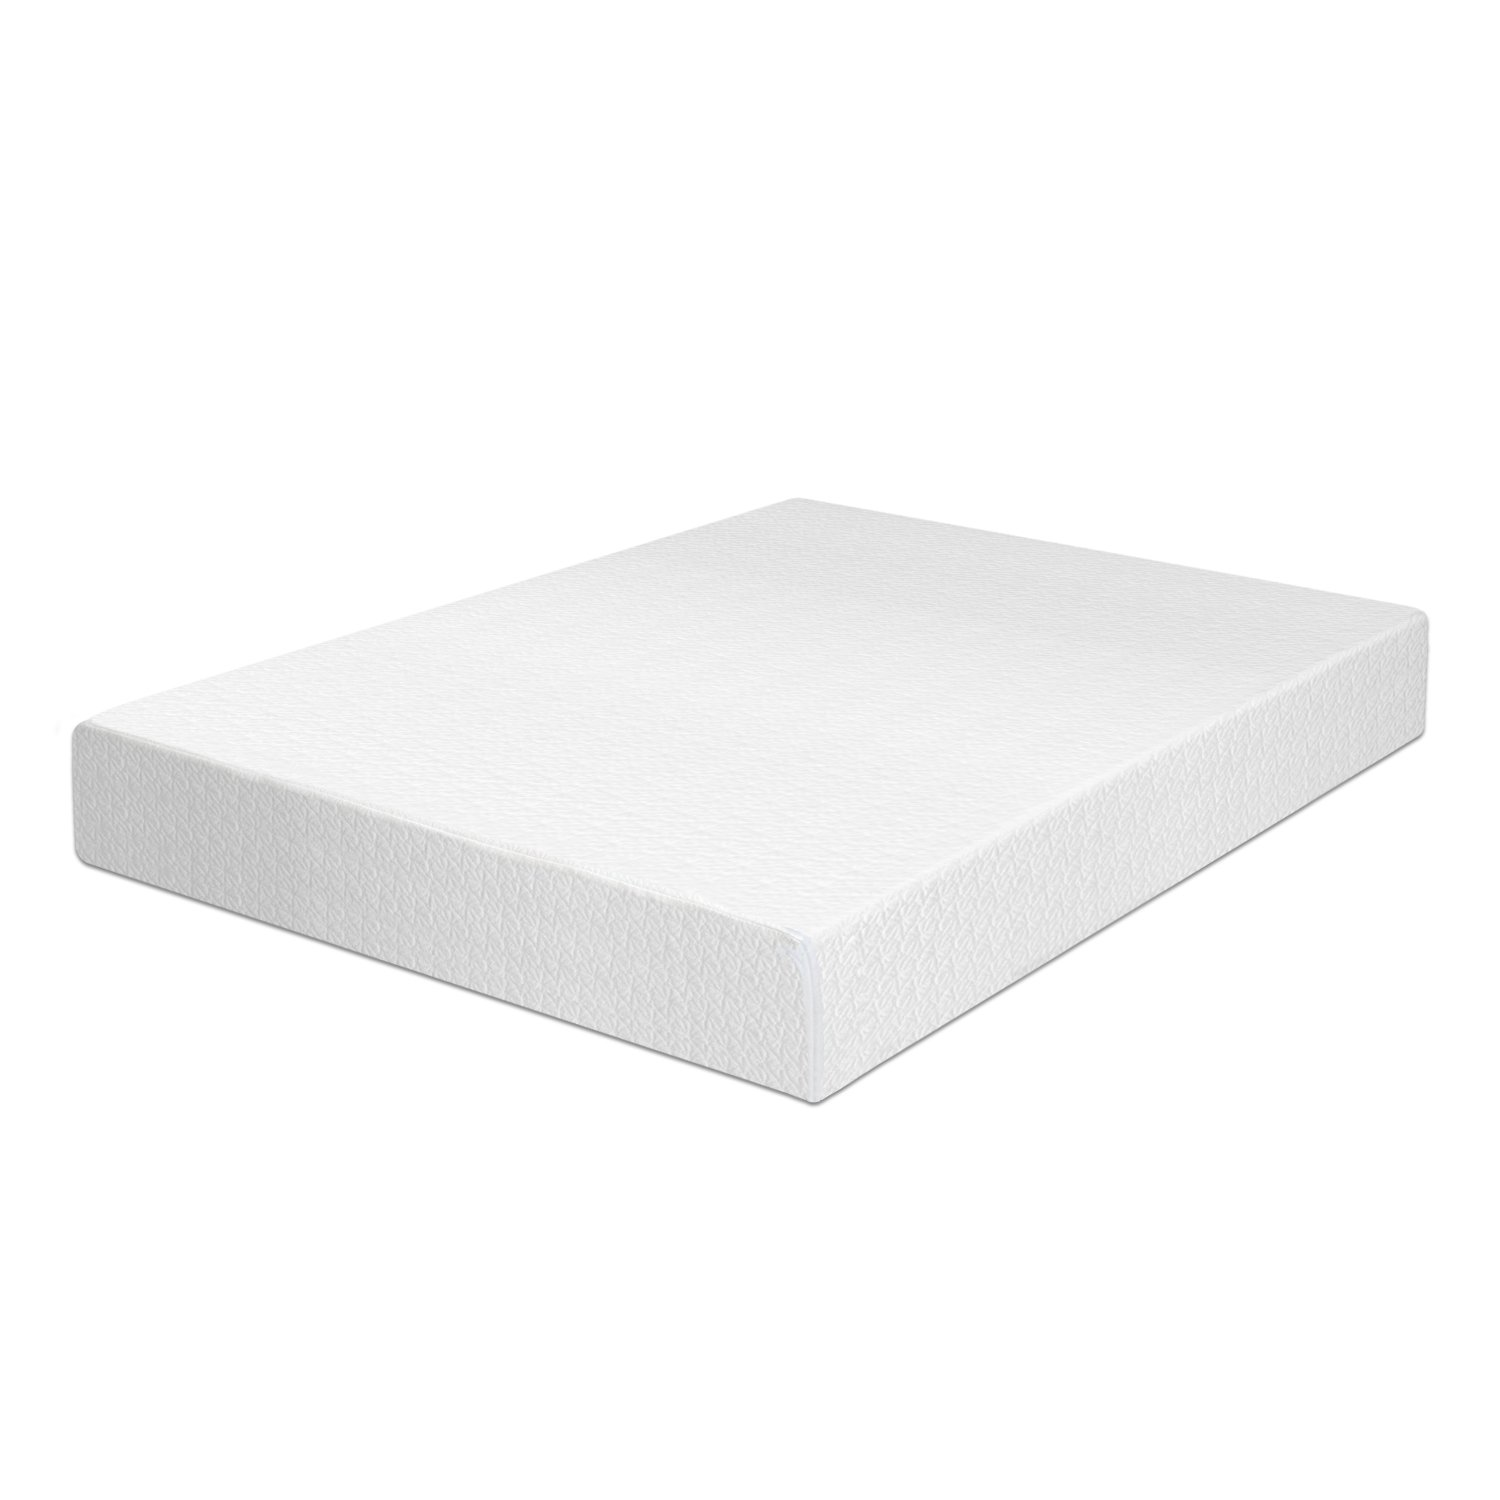 How To Find The Best Cheap Memory Foam Mattresses Elite Rest